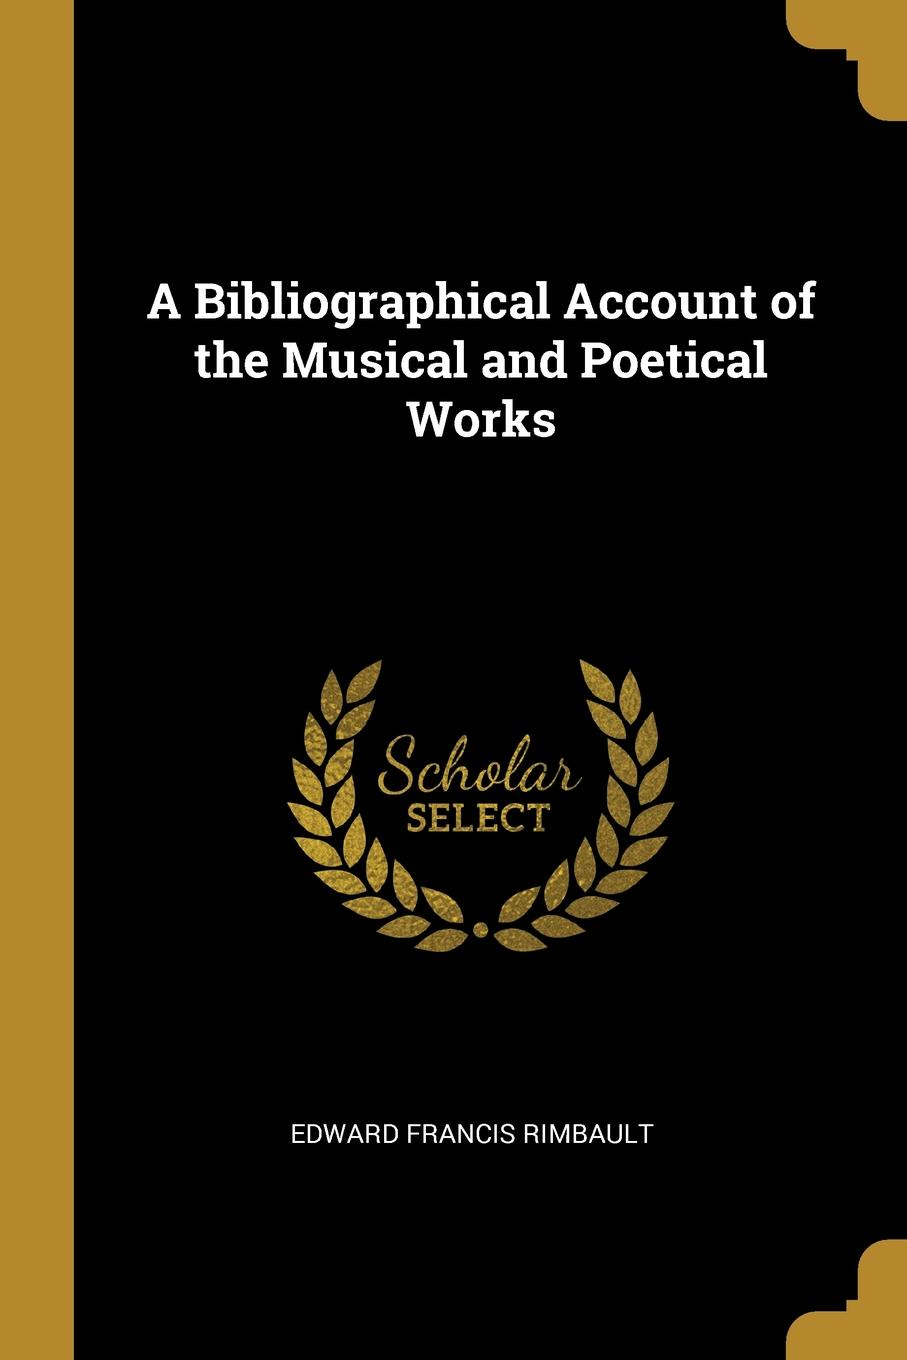 Edward Francis Rimbault. A Bibliographical Account of the Musical and Poetical Works